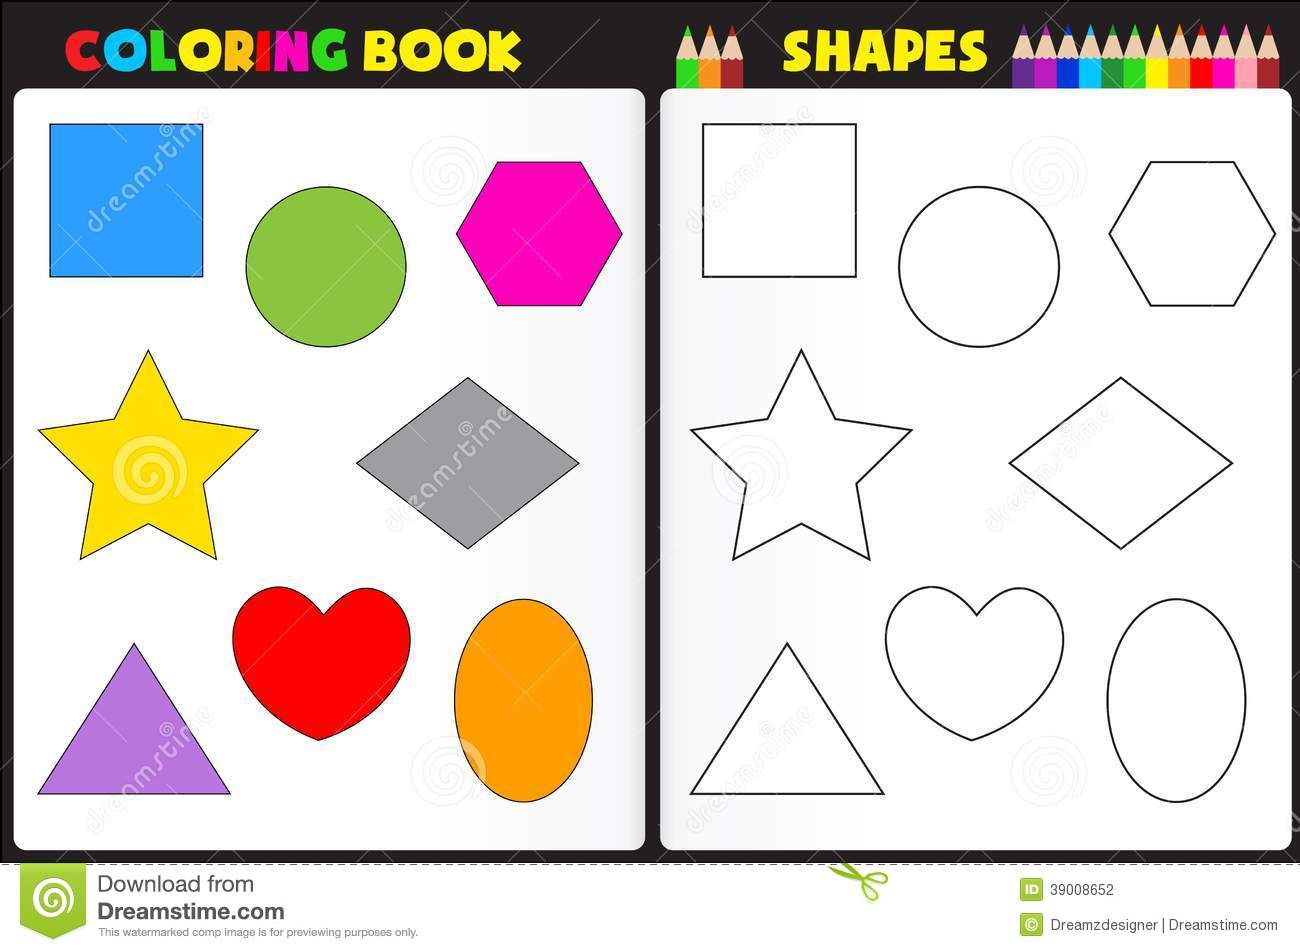 Book Page For Kids With Colorful Shapes And Sketches To Color